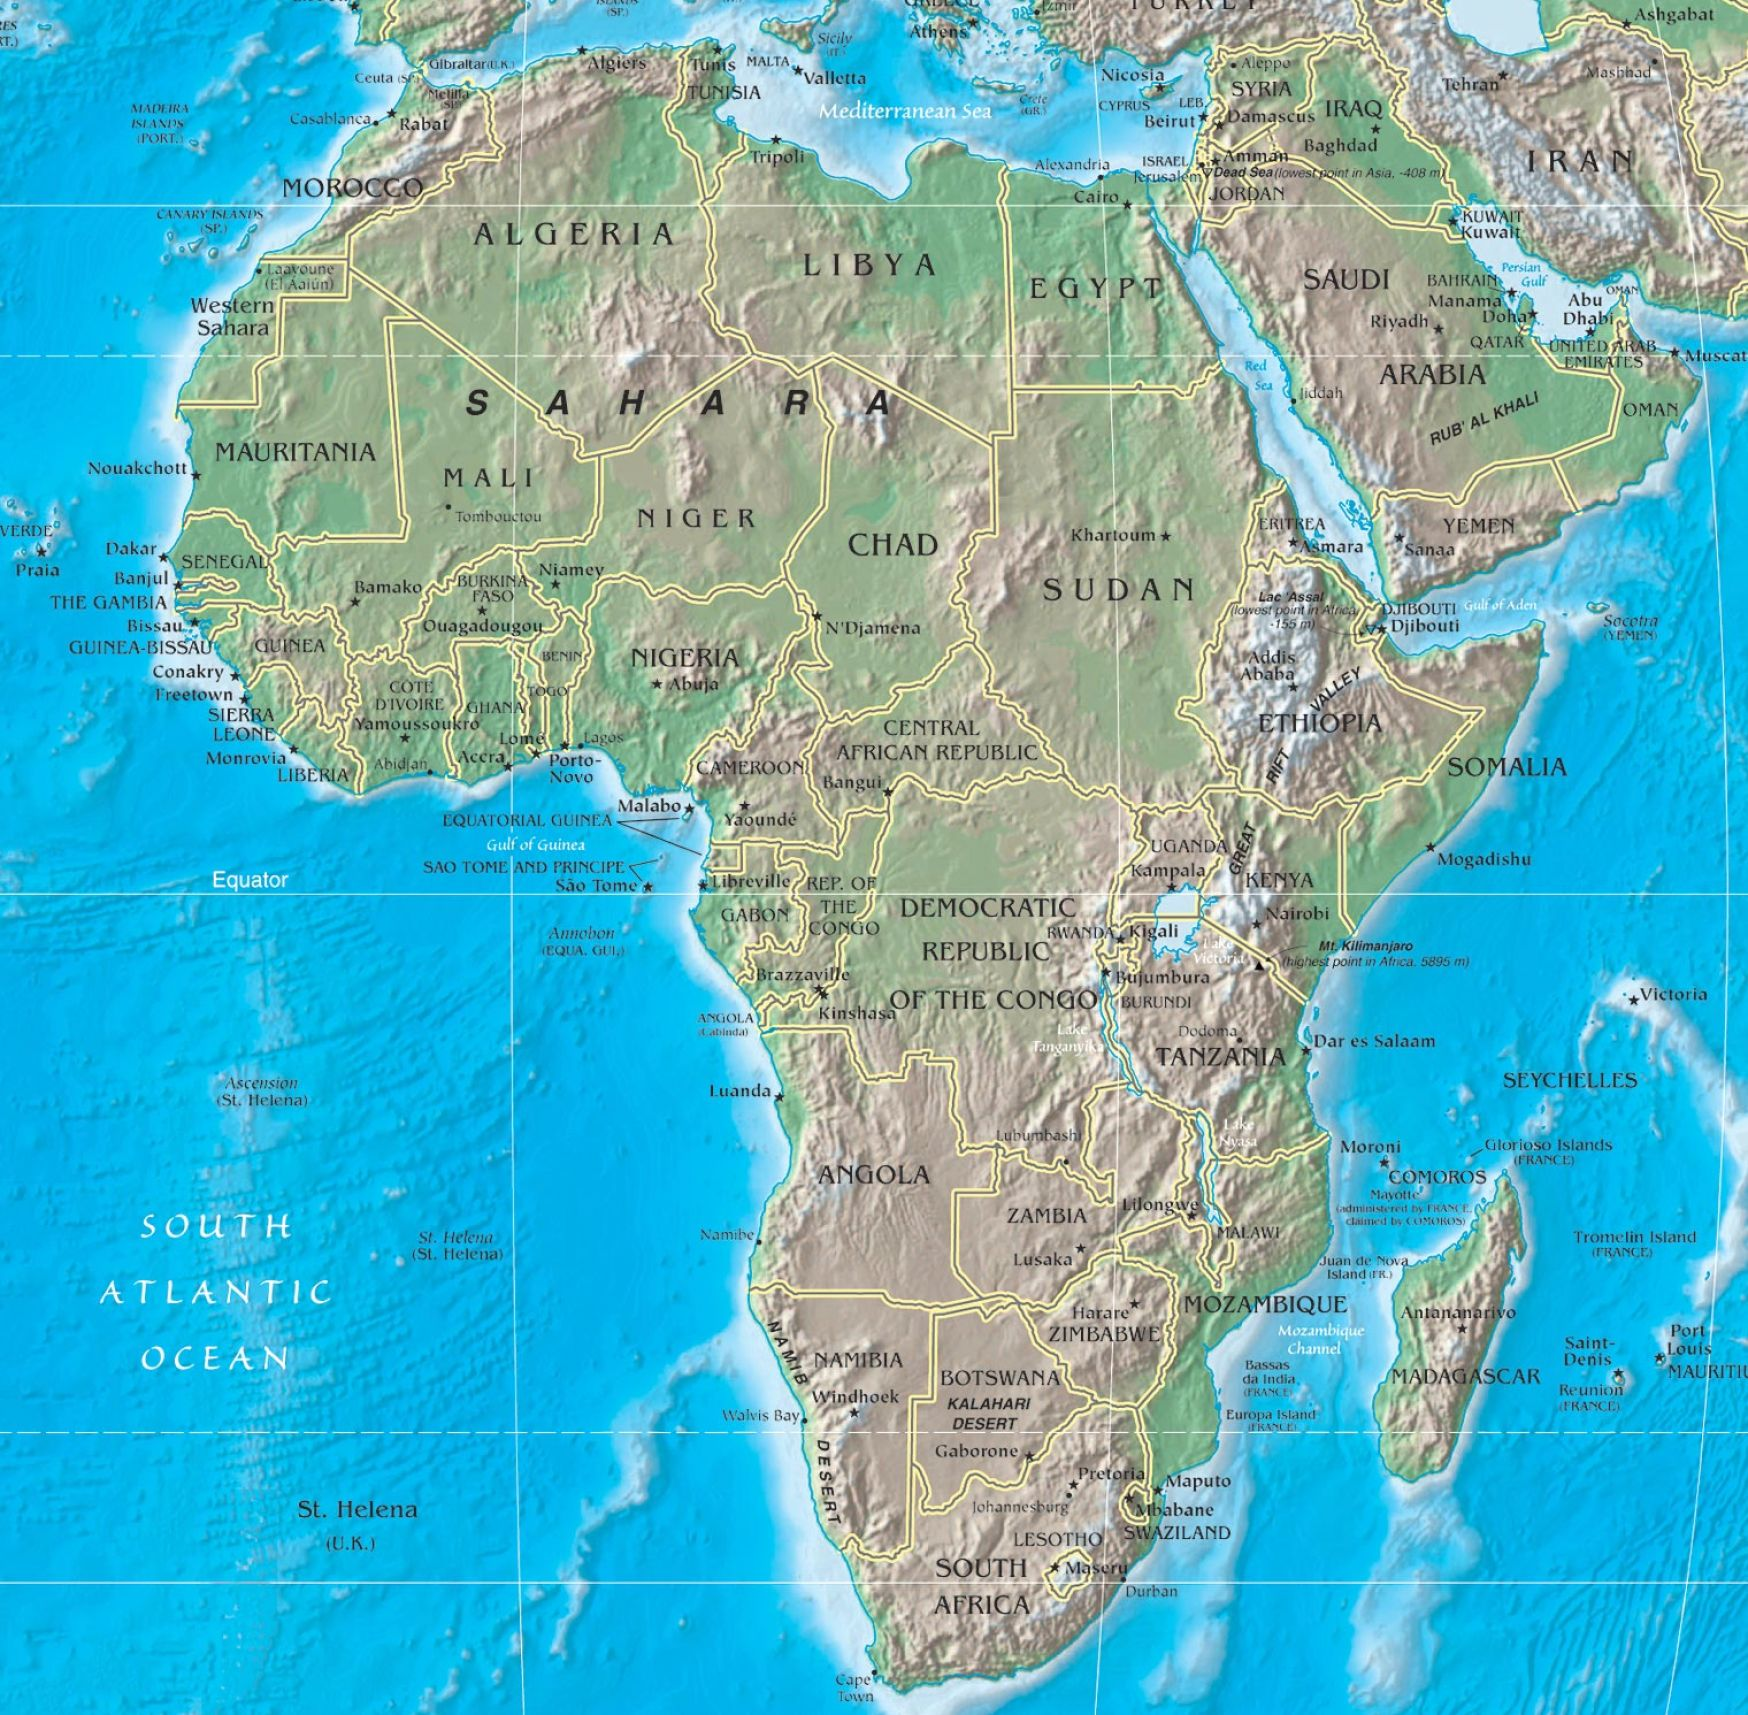 Africa Geography - World Map / World Atlas / Atlas of the ...